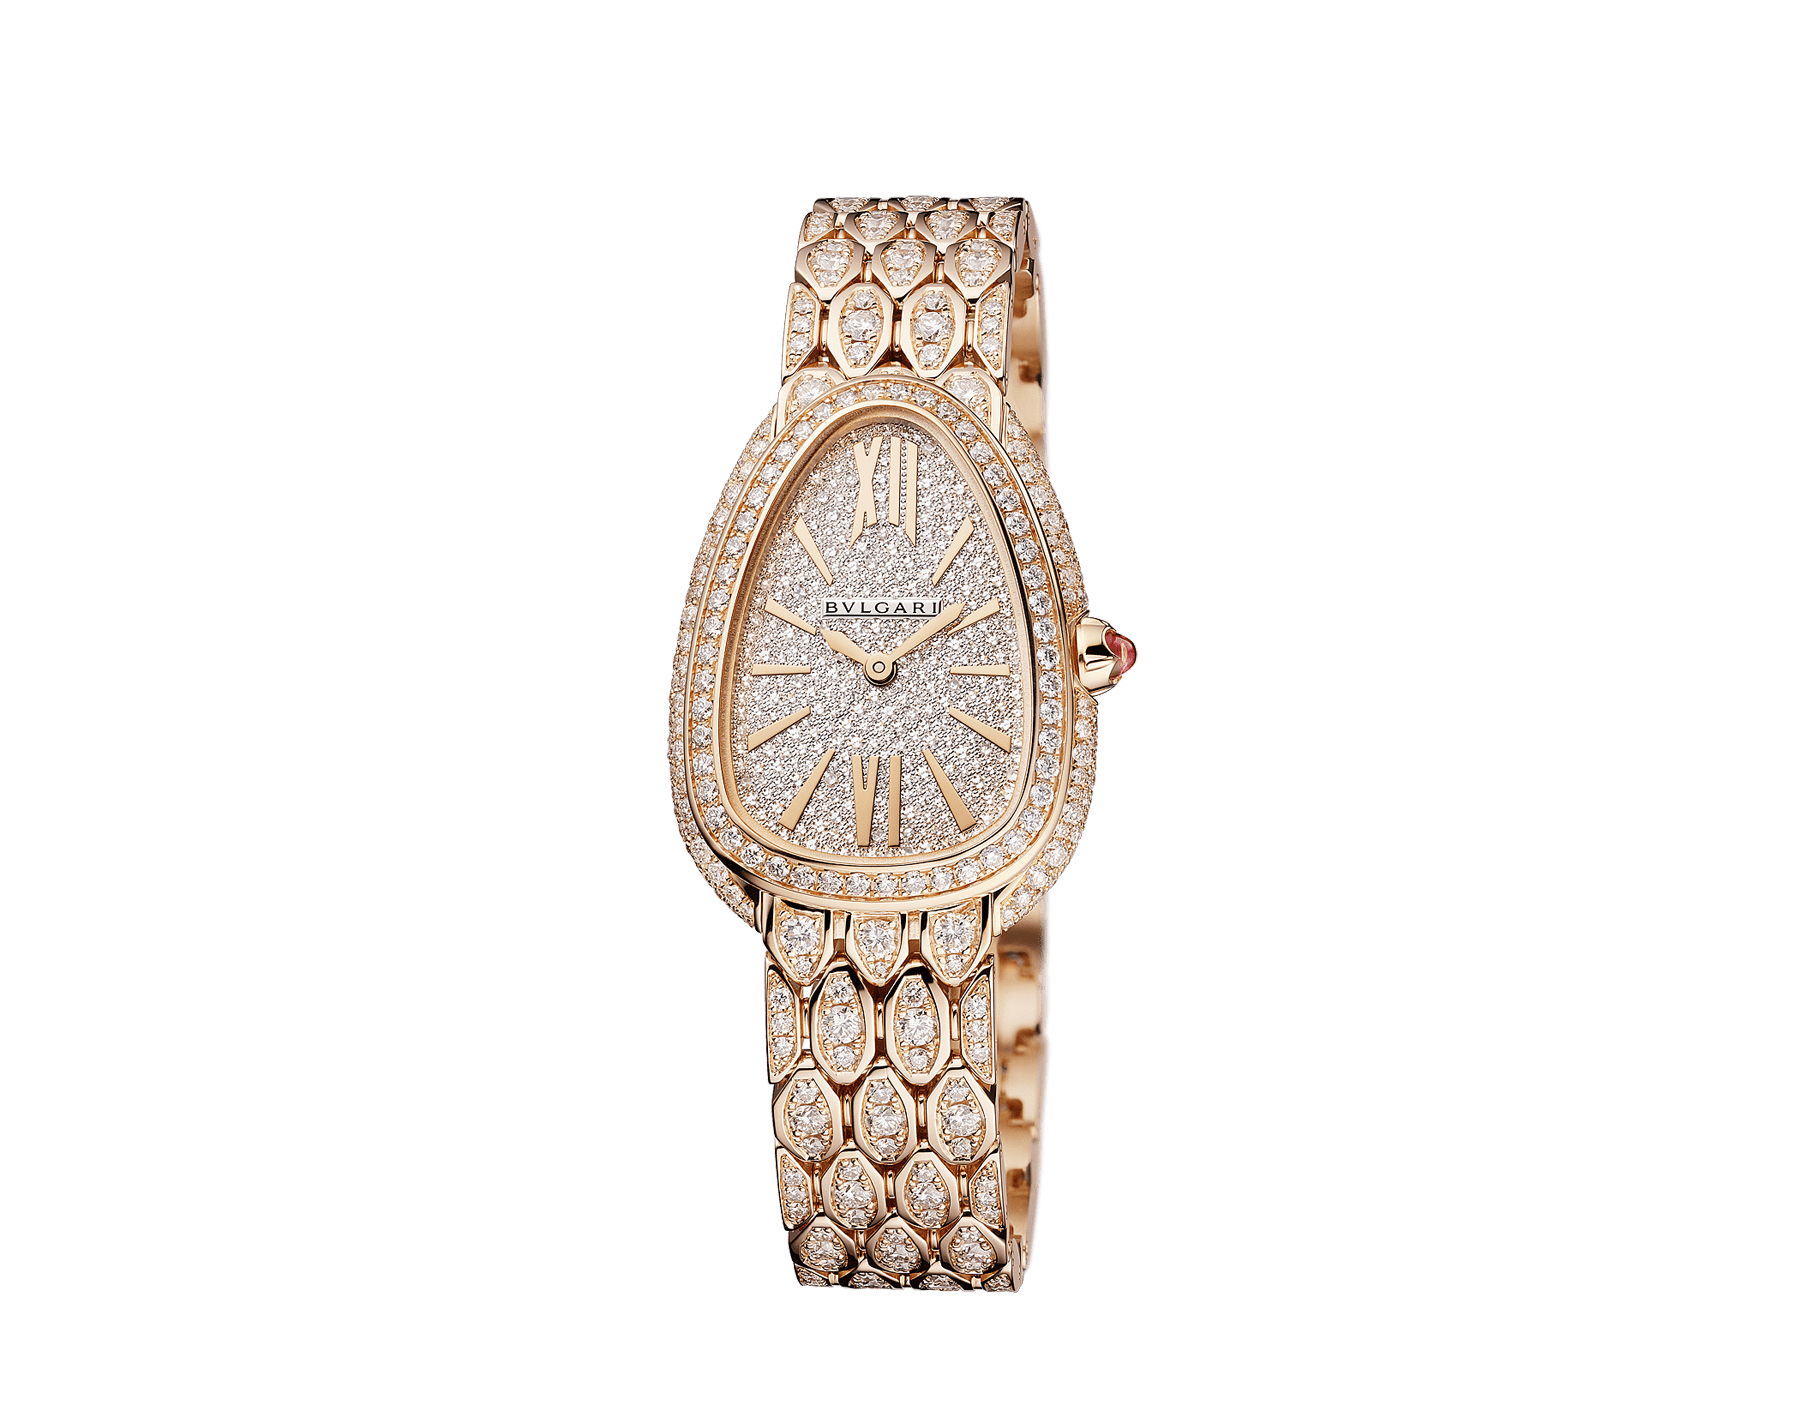 Serpenti Seduttori watch with 18 kt rose gold case and bracelet both set with diamonds, and full pavé dial 103160 image 2